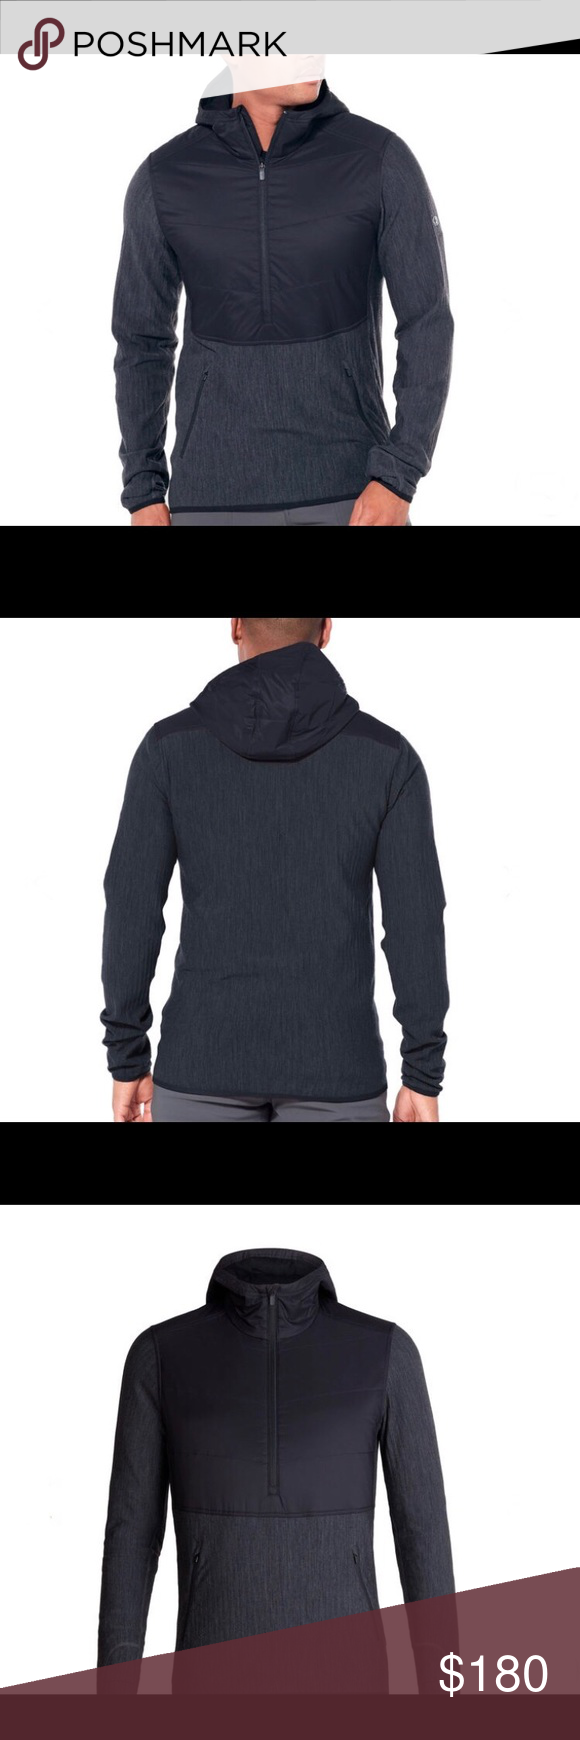 Cyose Fashion Round Neck Pullover Men Knitted Sweater Mens Sweaters Fall Knitwear